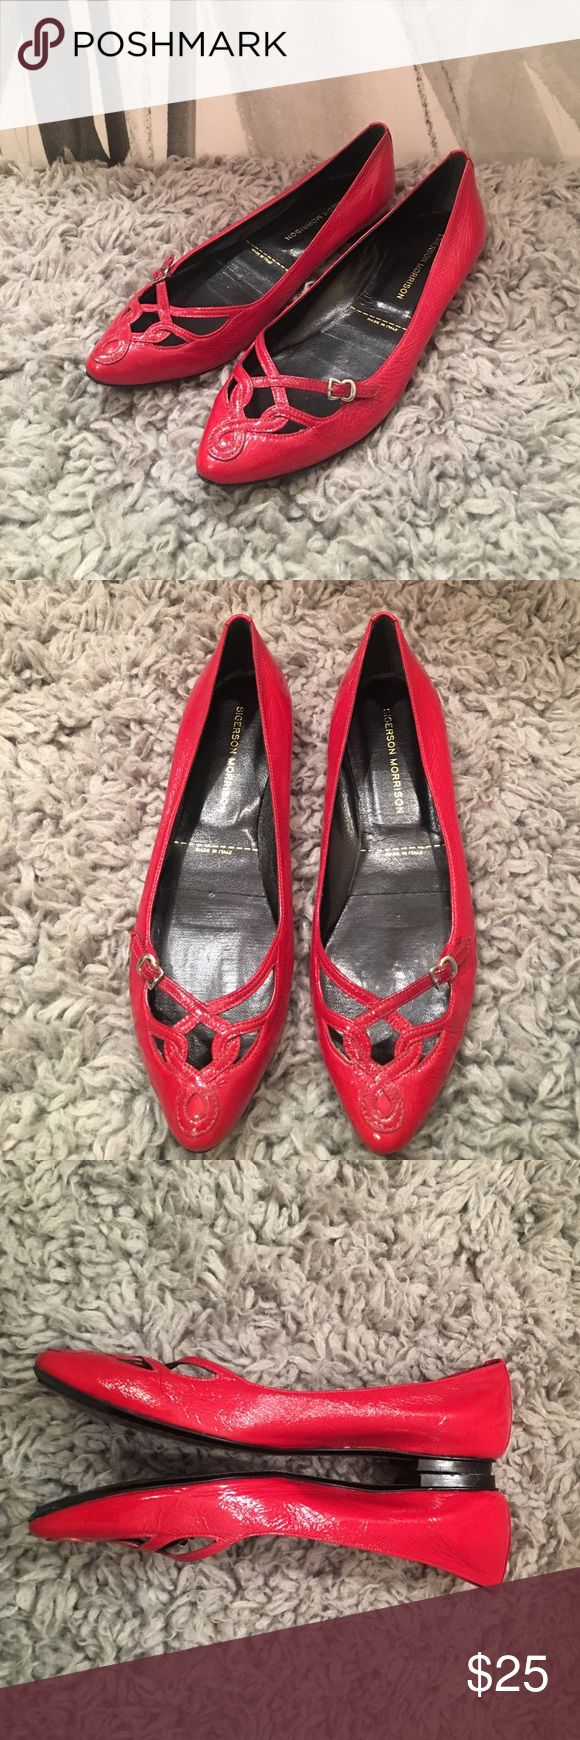 Sigerson Morrison flats Authentic Sigerson Morrison flats in beautiful condition. Amazing toe detail, size 6. Sigerson Morrison Shoes Flats & Loafers